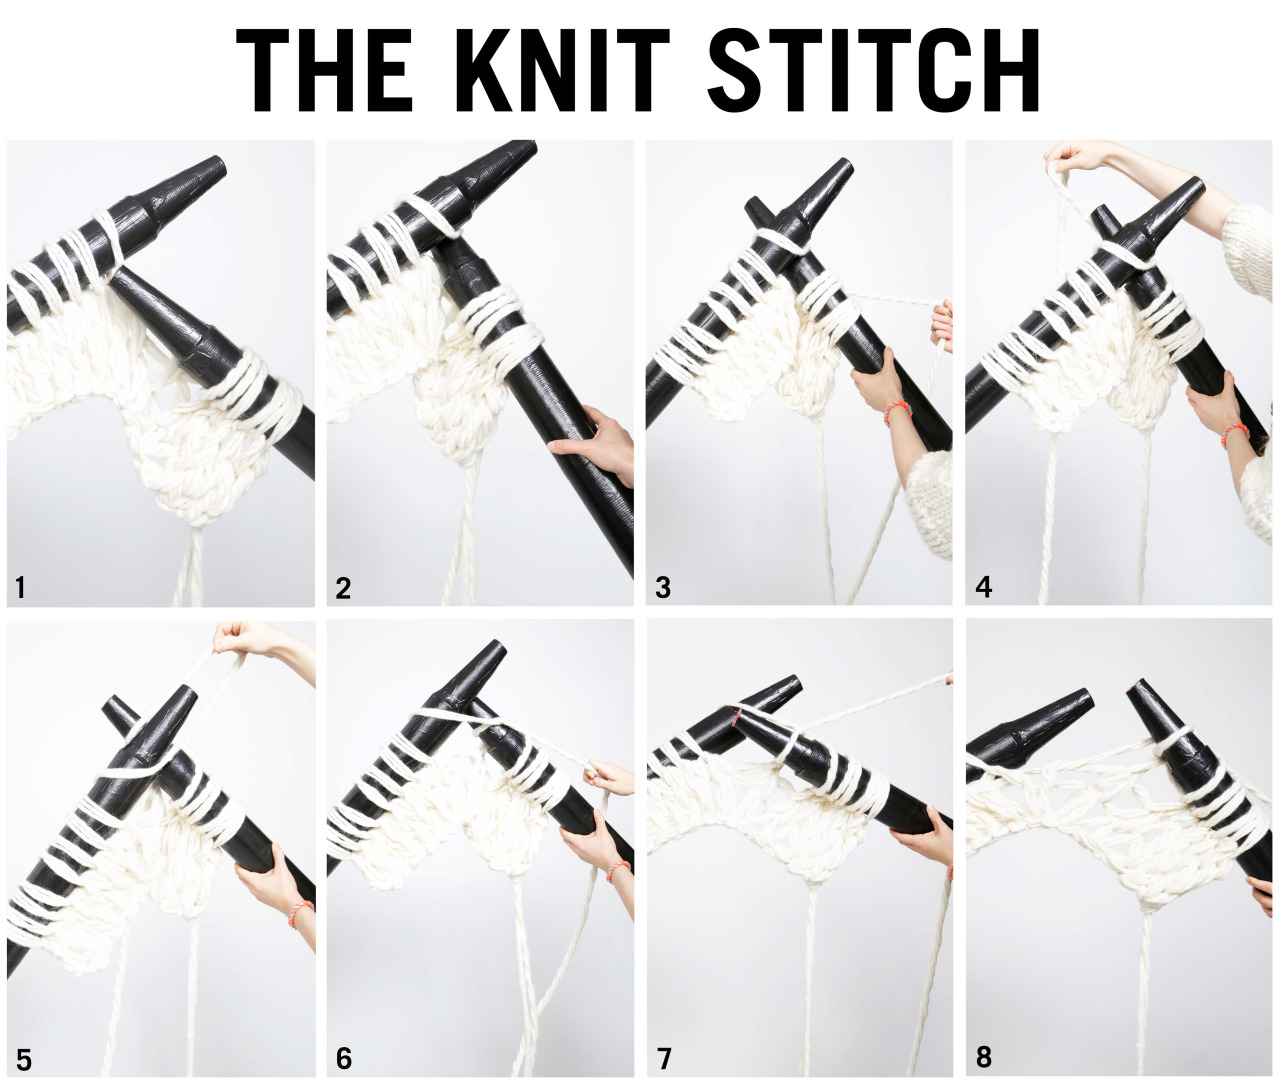 How to knit with super size needles - The knit stitch